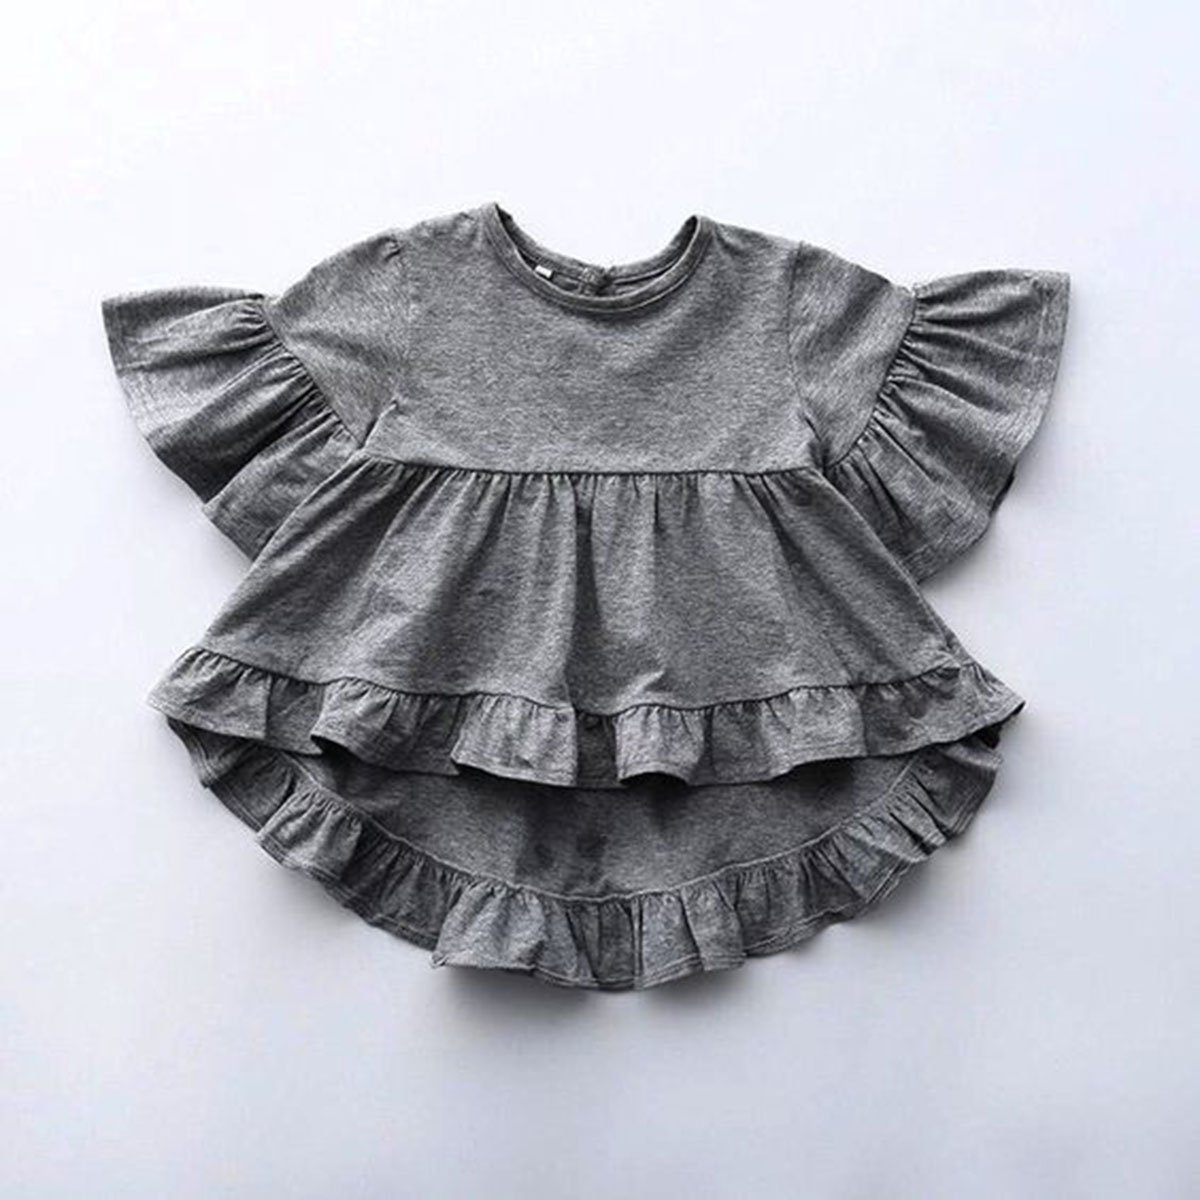 XBRECO Toddler Kids Girls Flare Sleevele Peplum Tops Baby Ruffled Casual Beach Blouse Clothes Gray